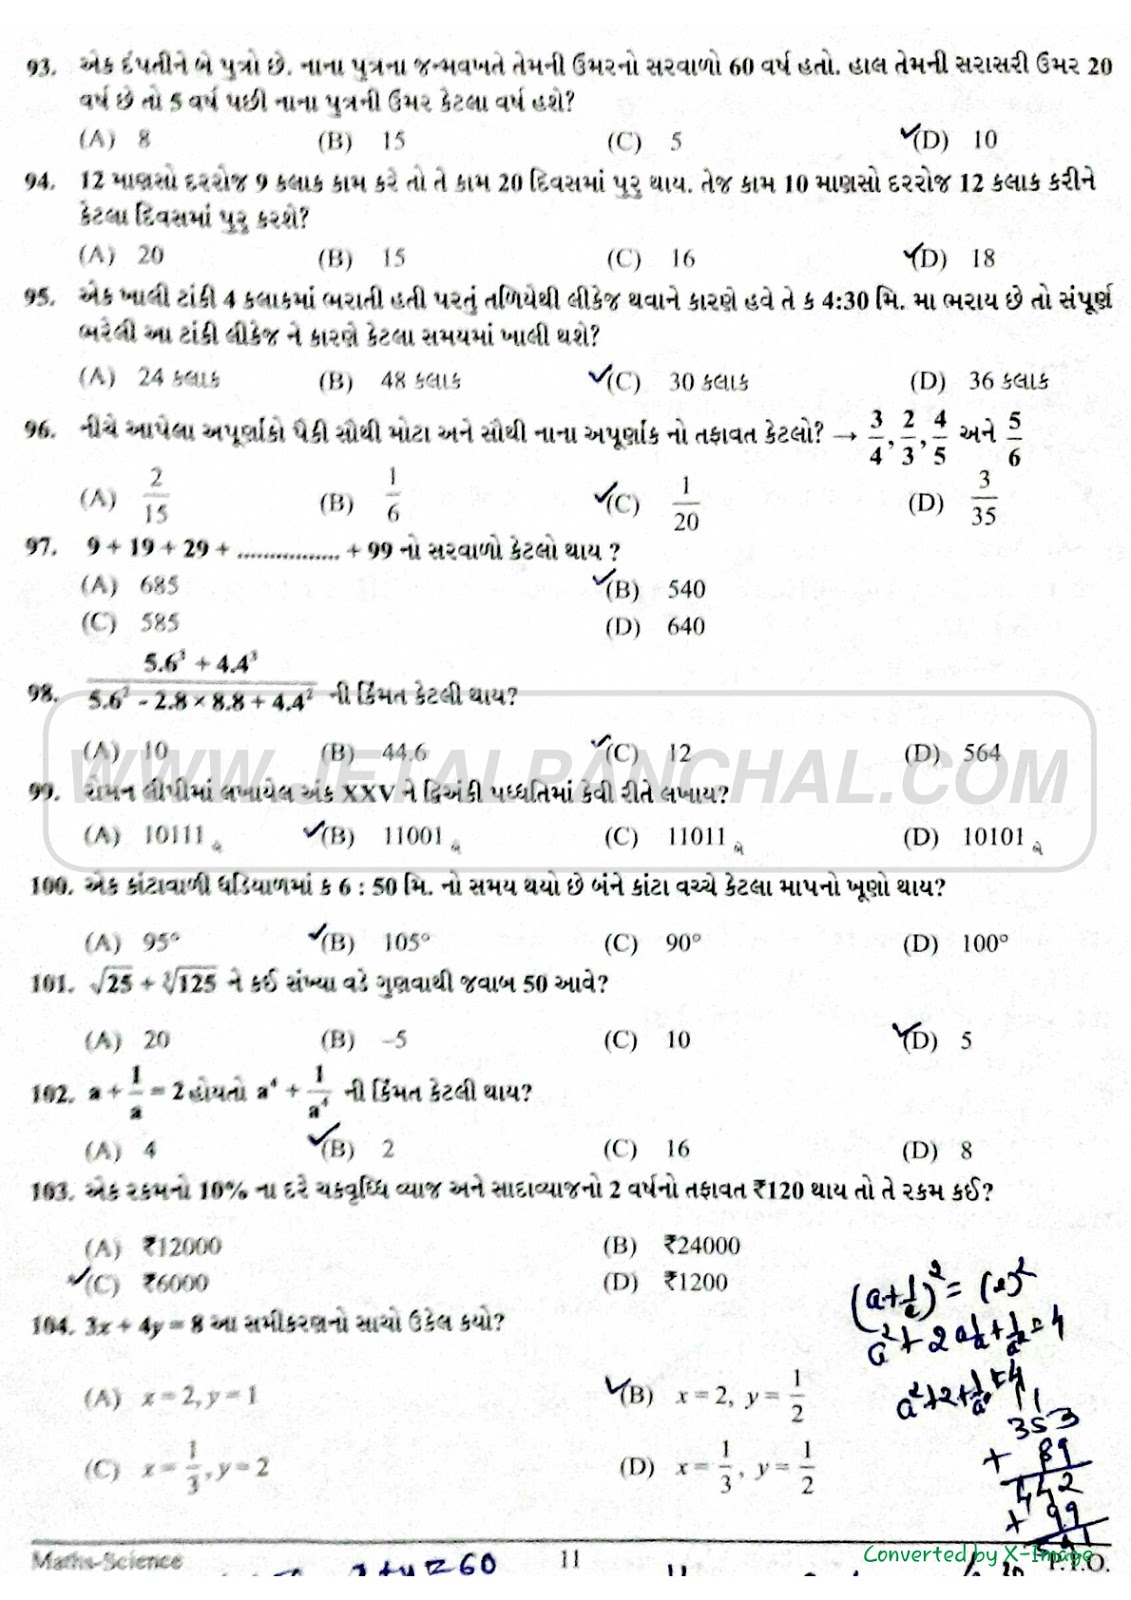 tet paper ii 2012 questions with Ap tet march 2014 -paper i question paper with key and solutions ap tet march 2014 - paper ii social question paper with key ap tet-paper 1 june - 2012 question paper.